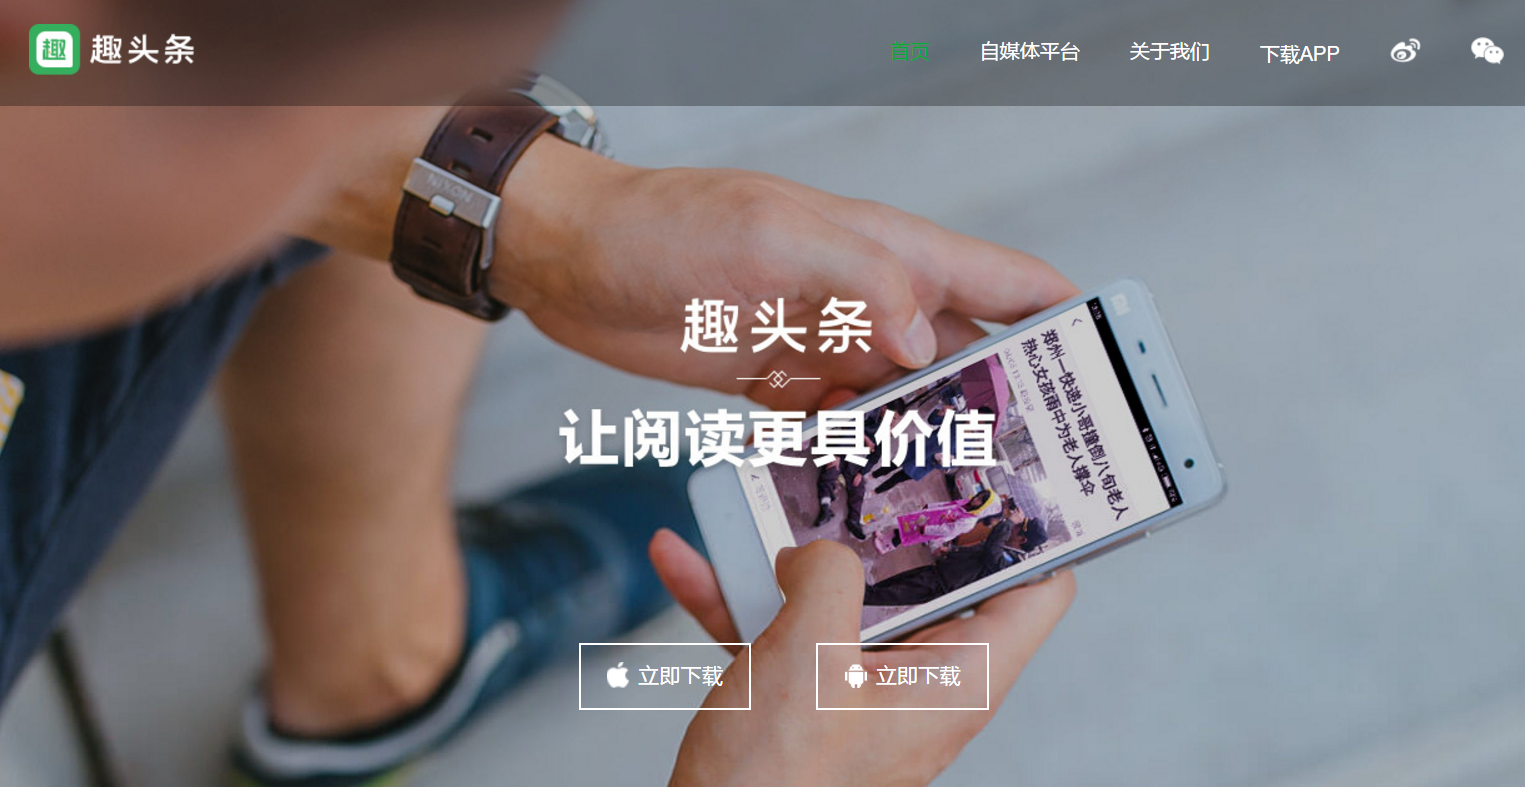 Chinese News Aggregation App Targets $3 Billion U.S. IPO